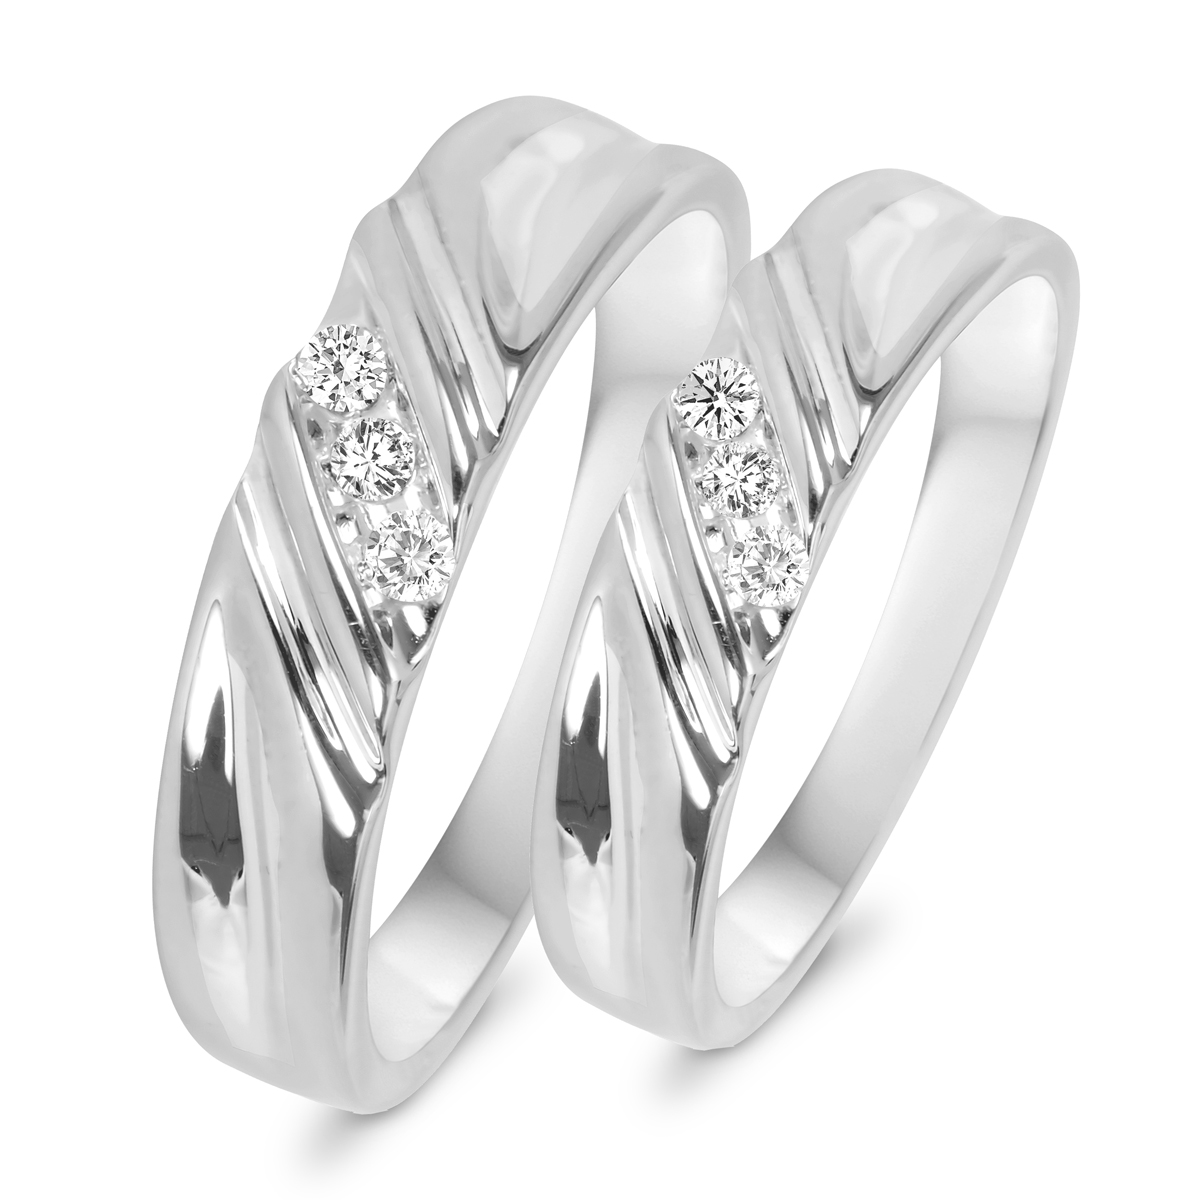 1 10 CT TW Diamond His And Hers Wedding Rings 14K White